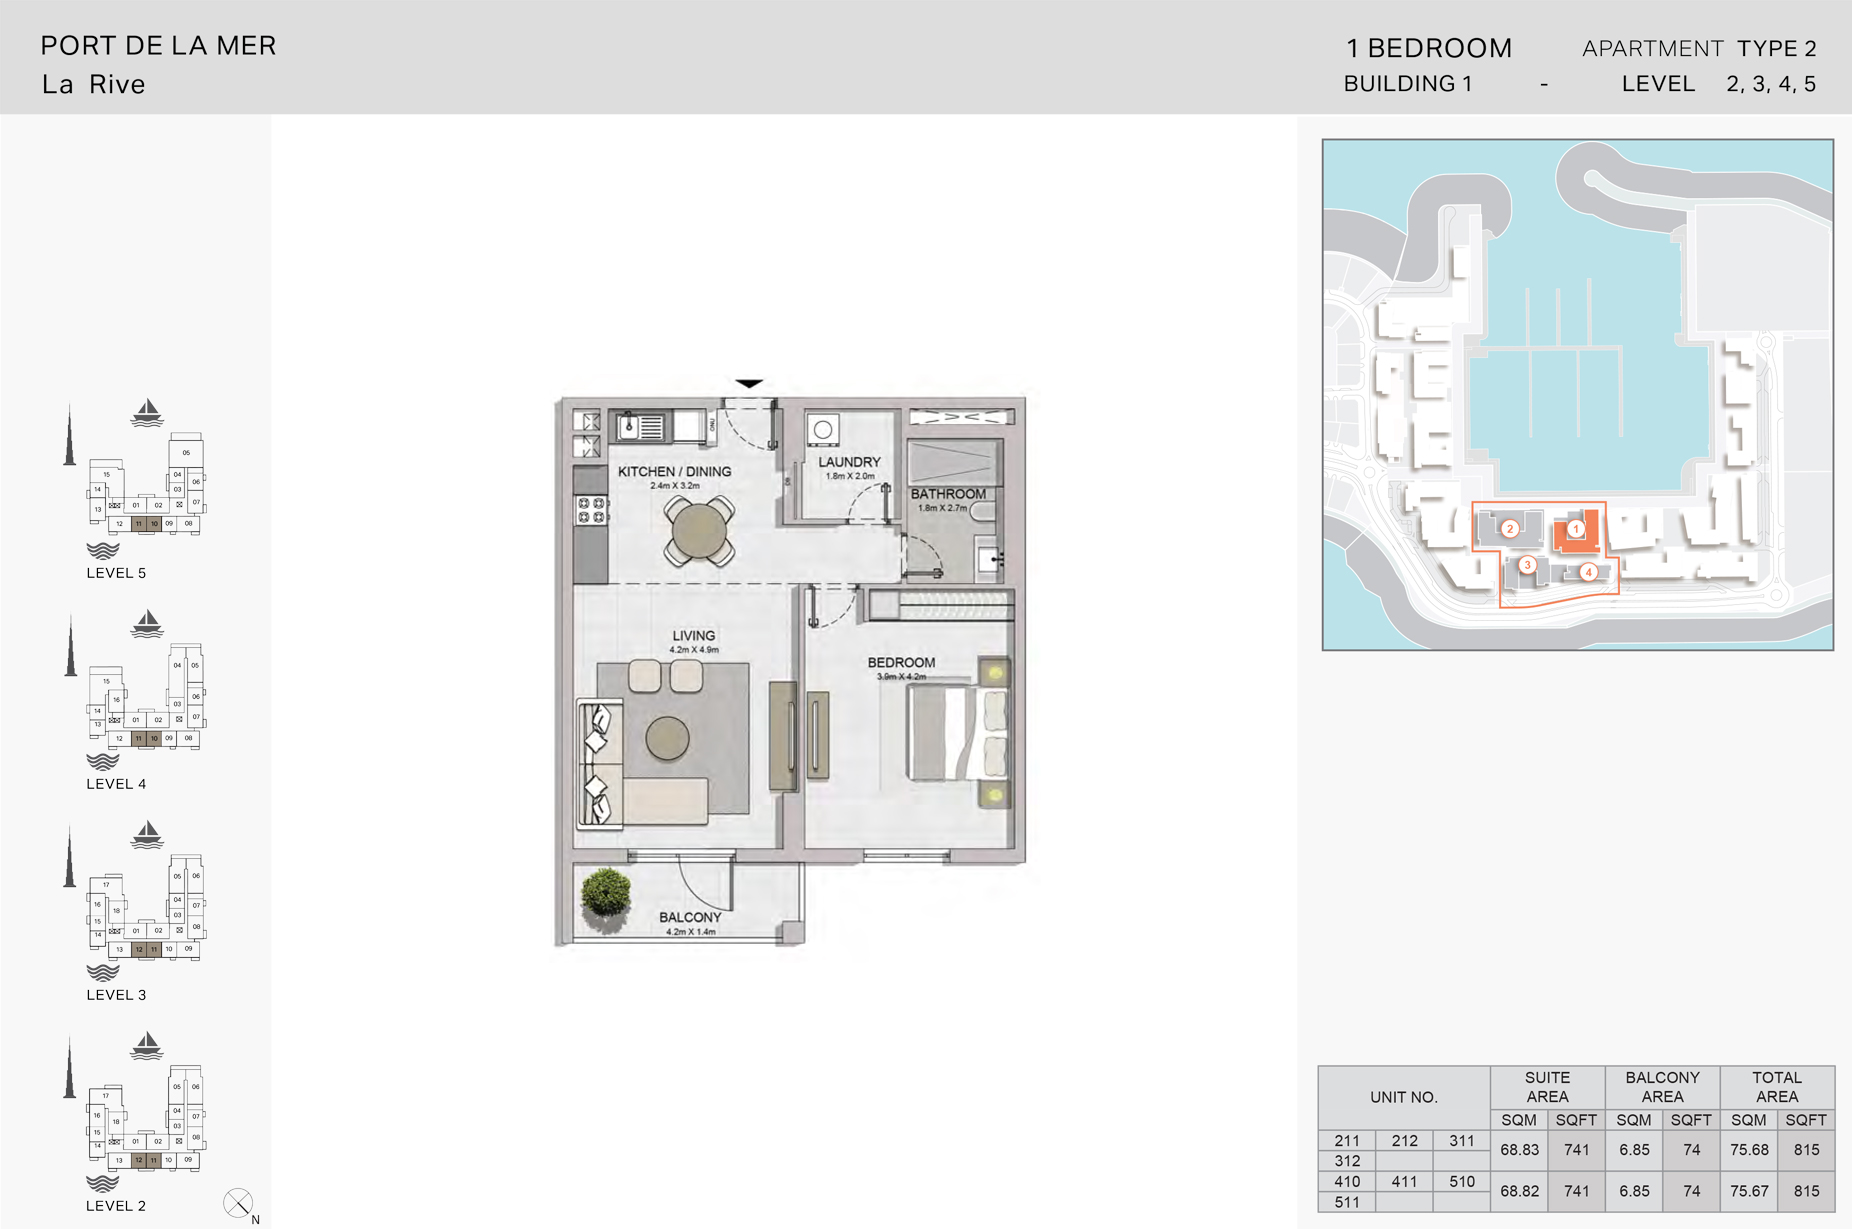 1 Bedroom Build1 Type2  Size 815 sqft